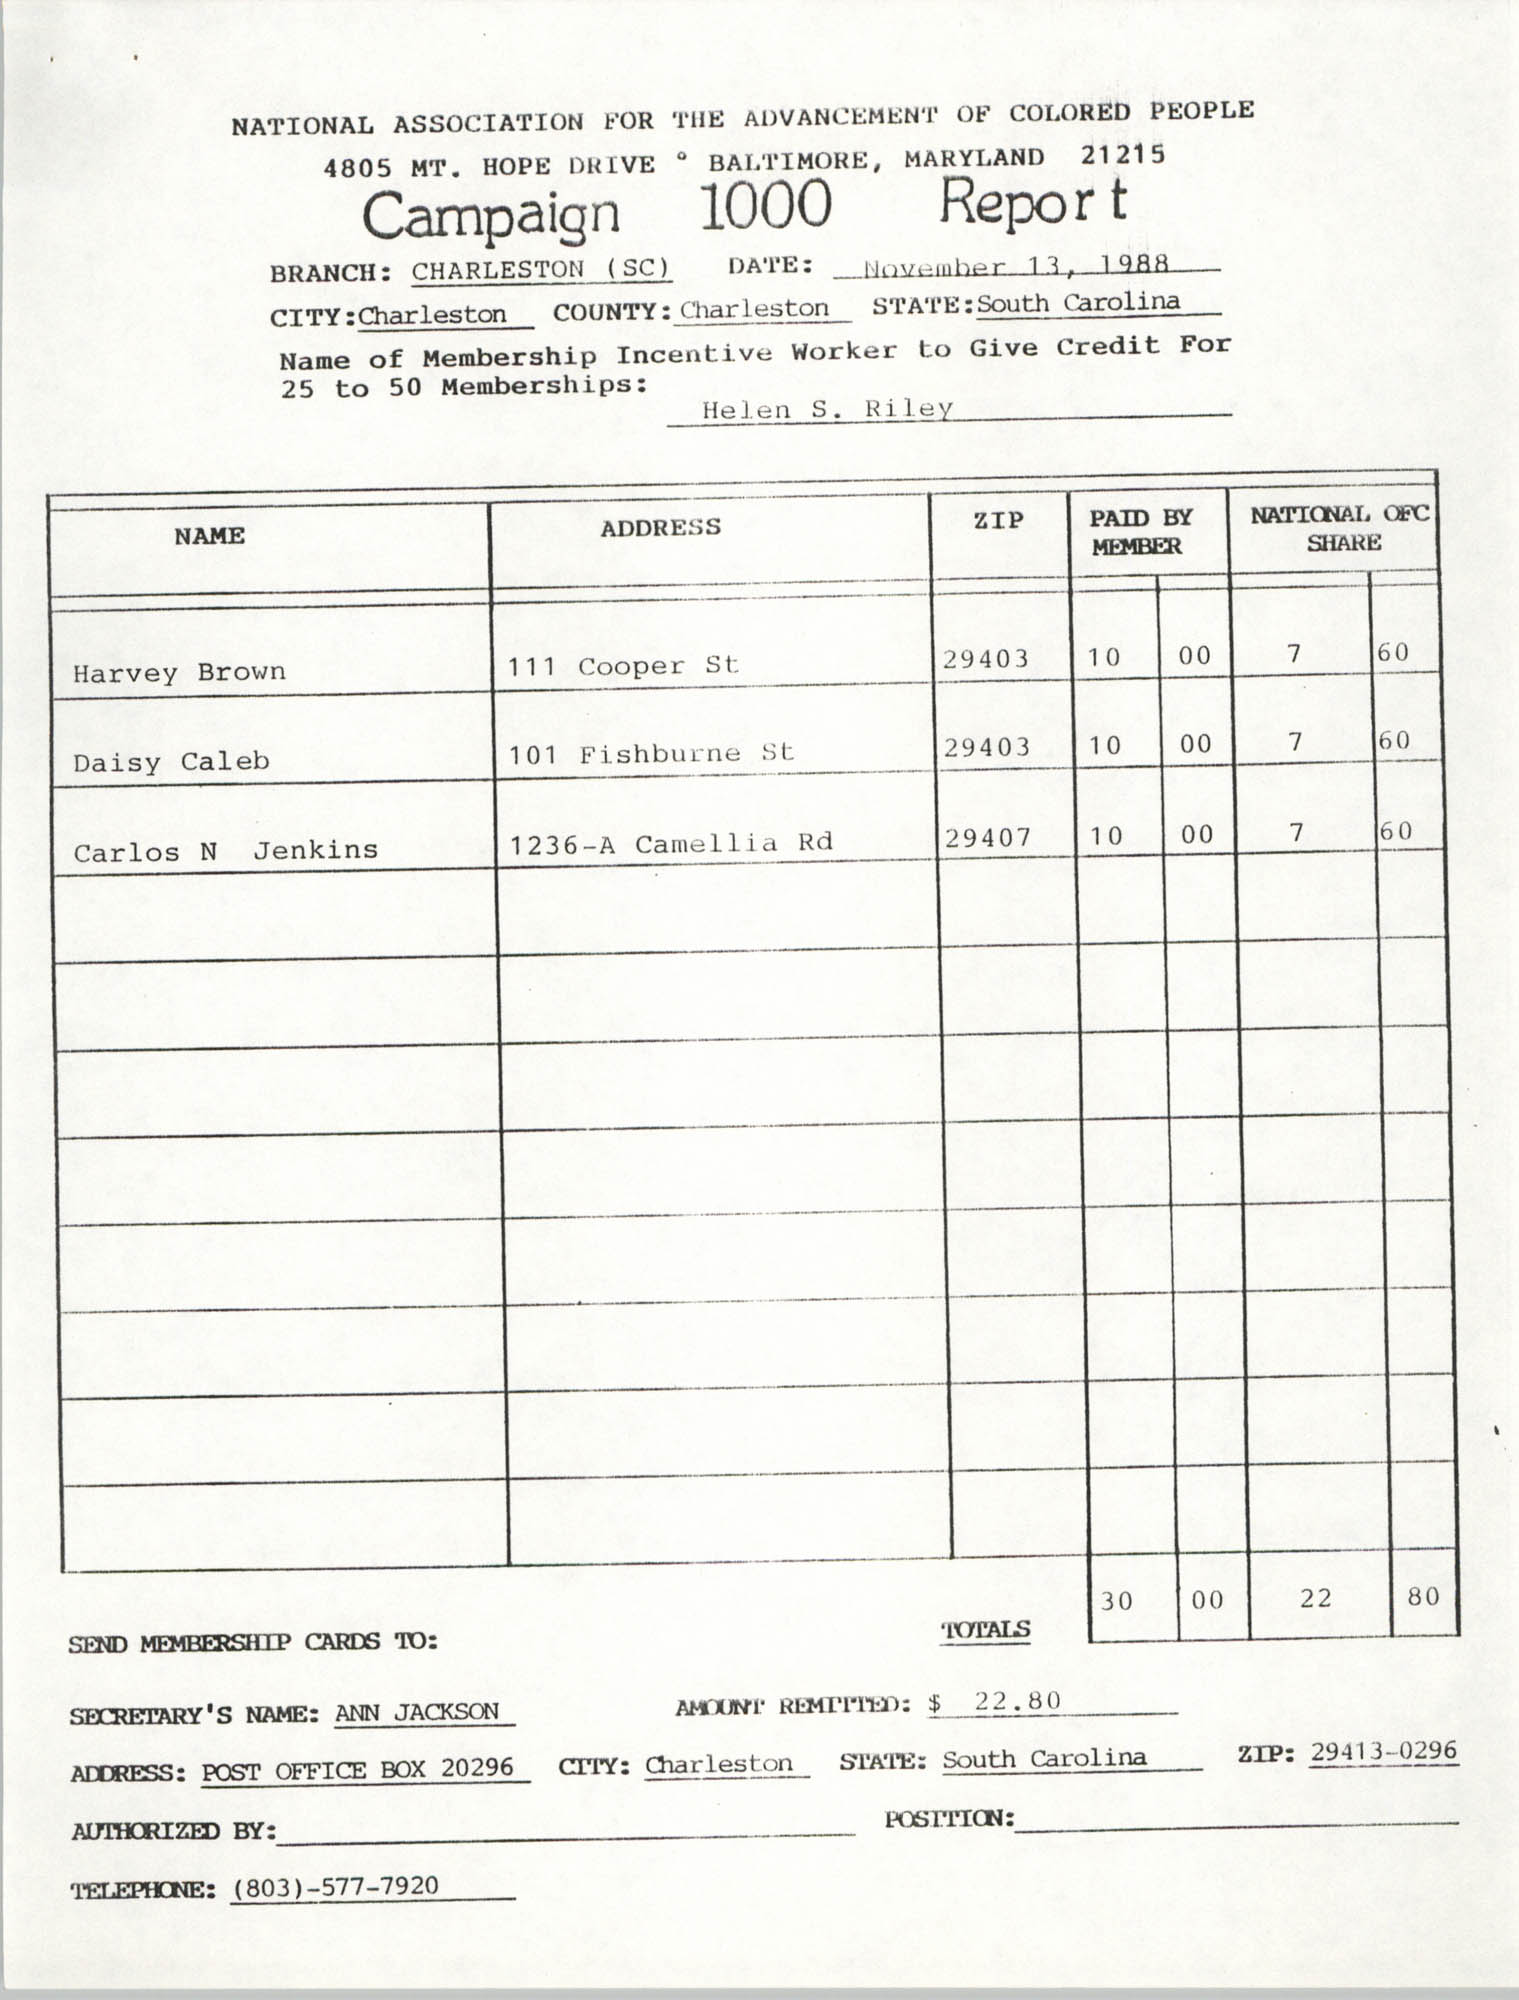 Campaign 1000 Report, Helen S. Riley, Charleston Branch of the NAACP, November 13, 1988